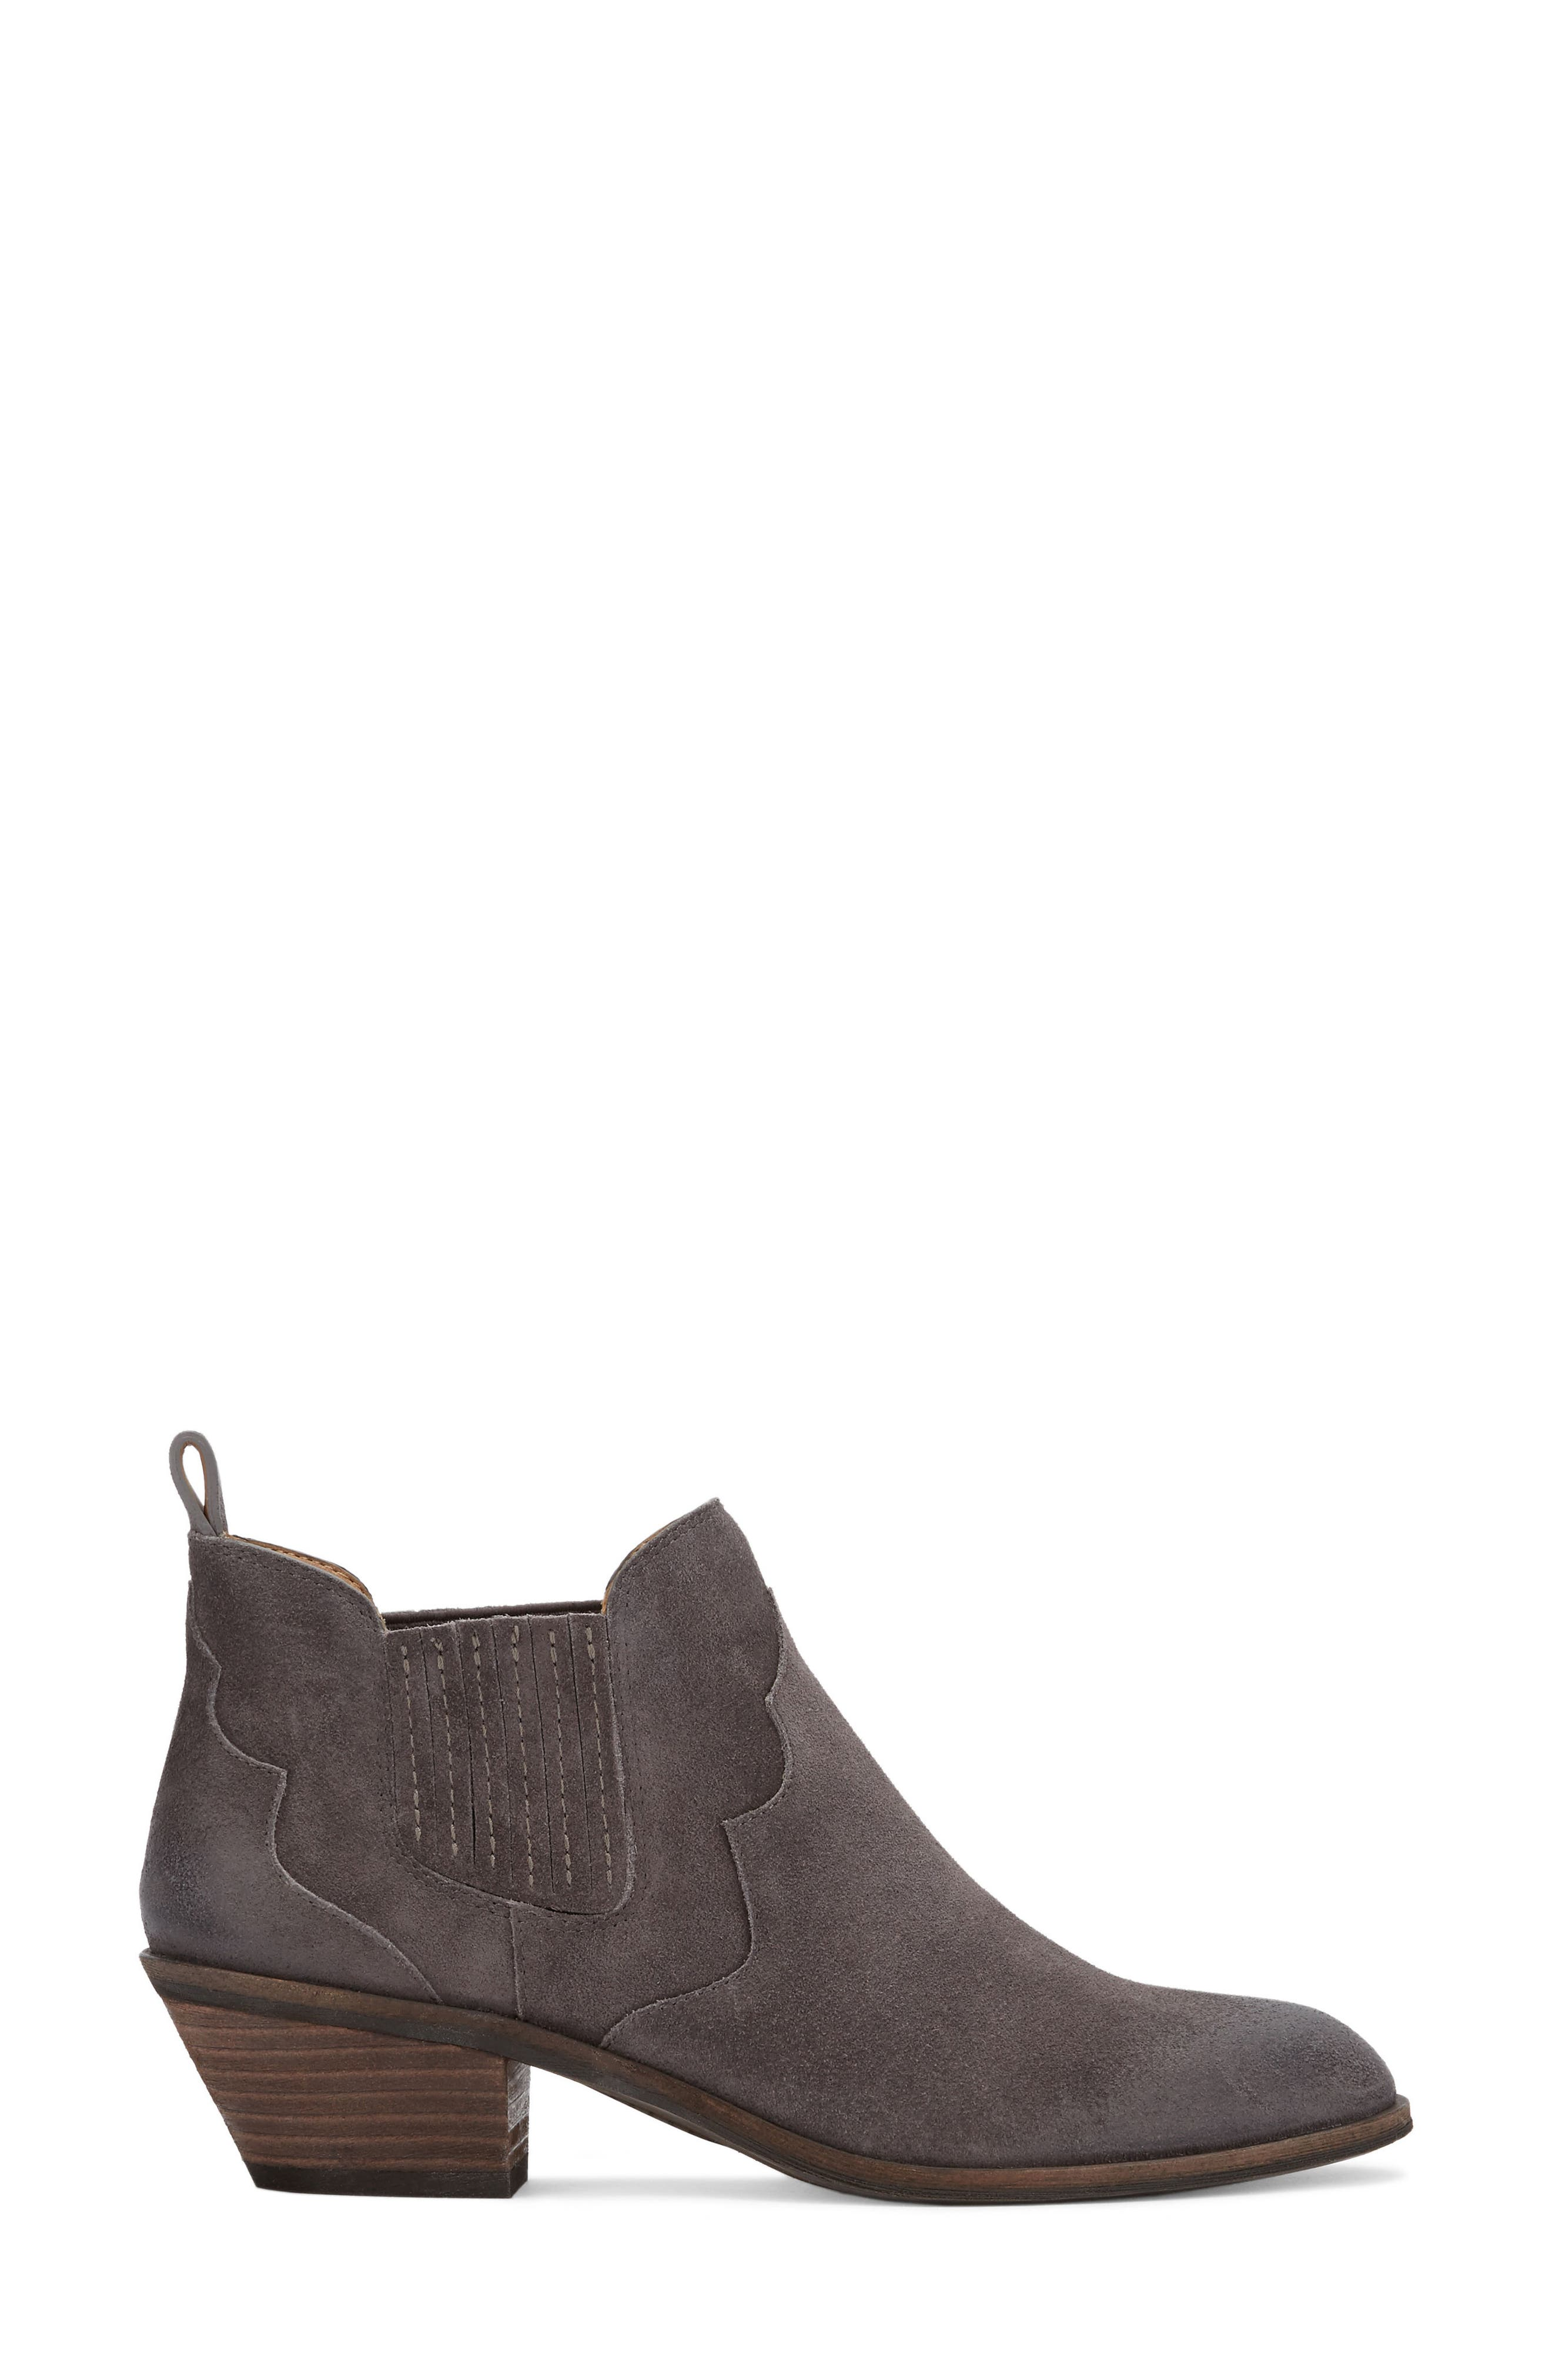 Naomi Bootie,                             Alternate thumbnail 3, color,                             Charcoal Suede